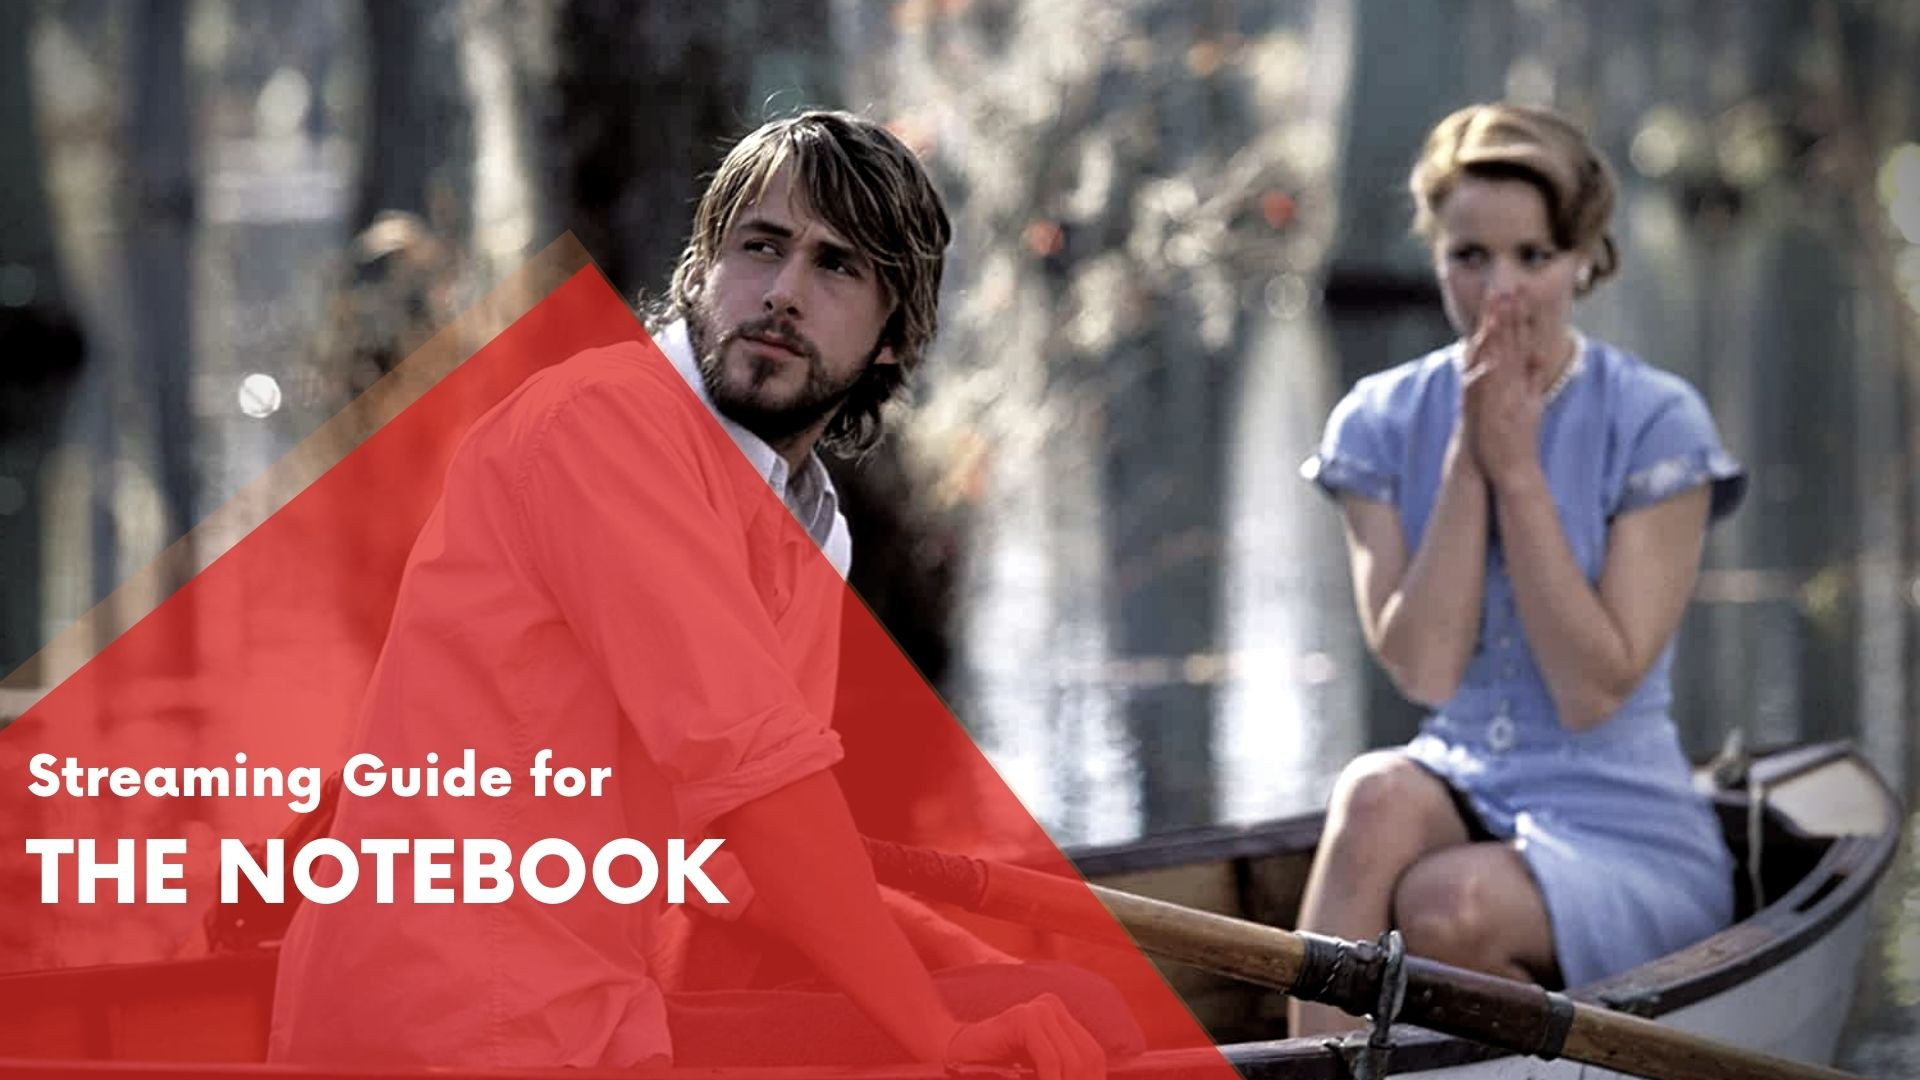 Answering if The Notebook is available on Hulu